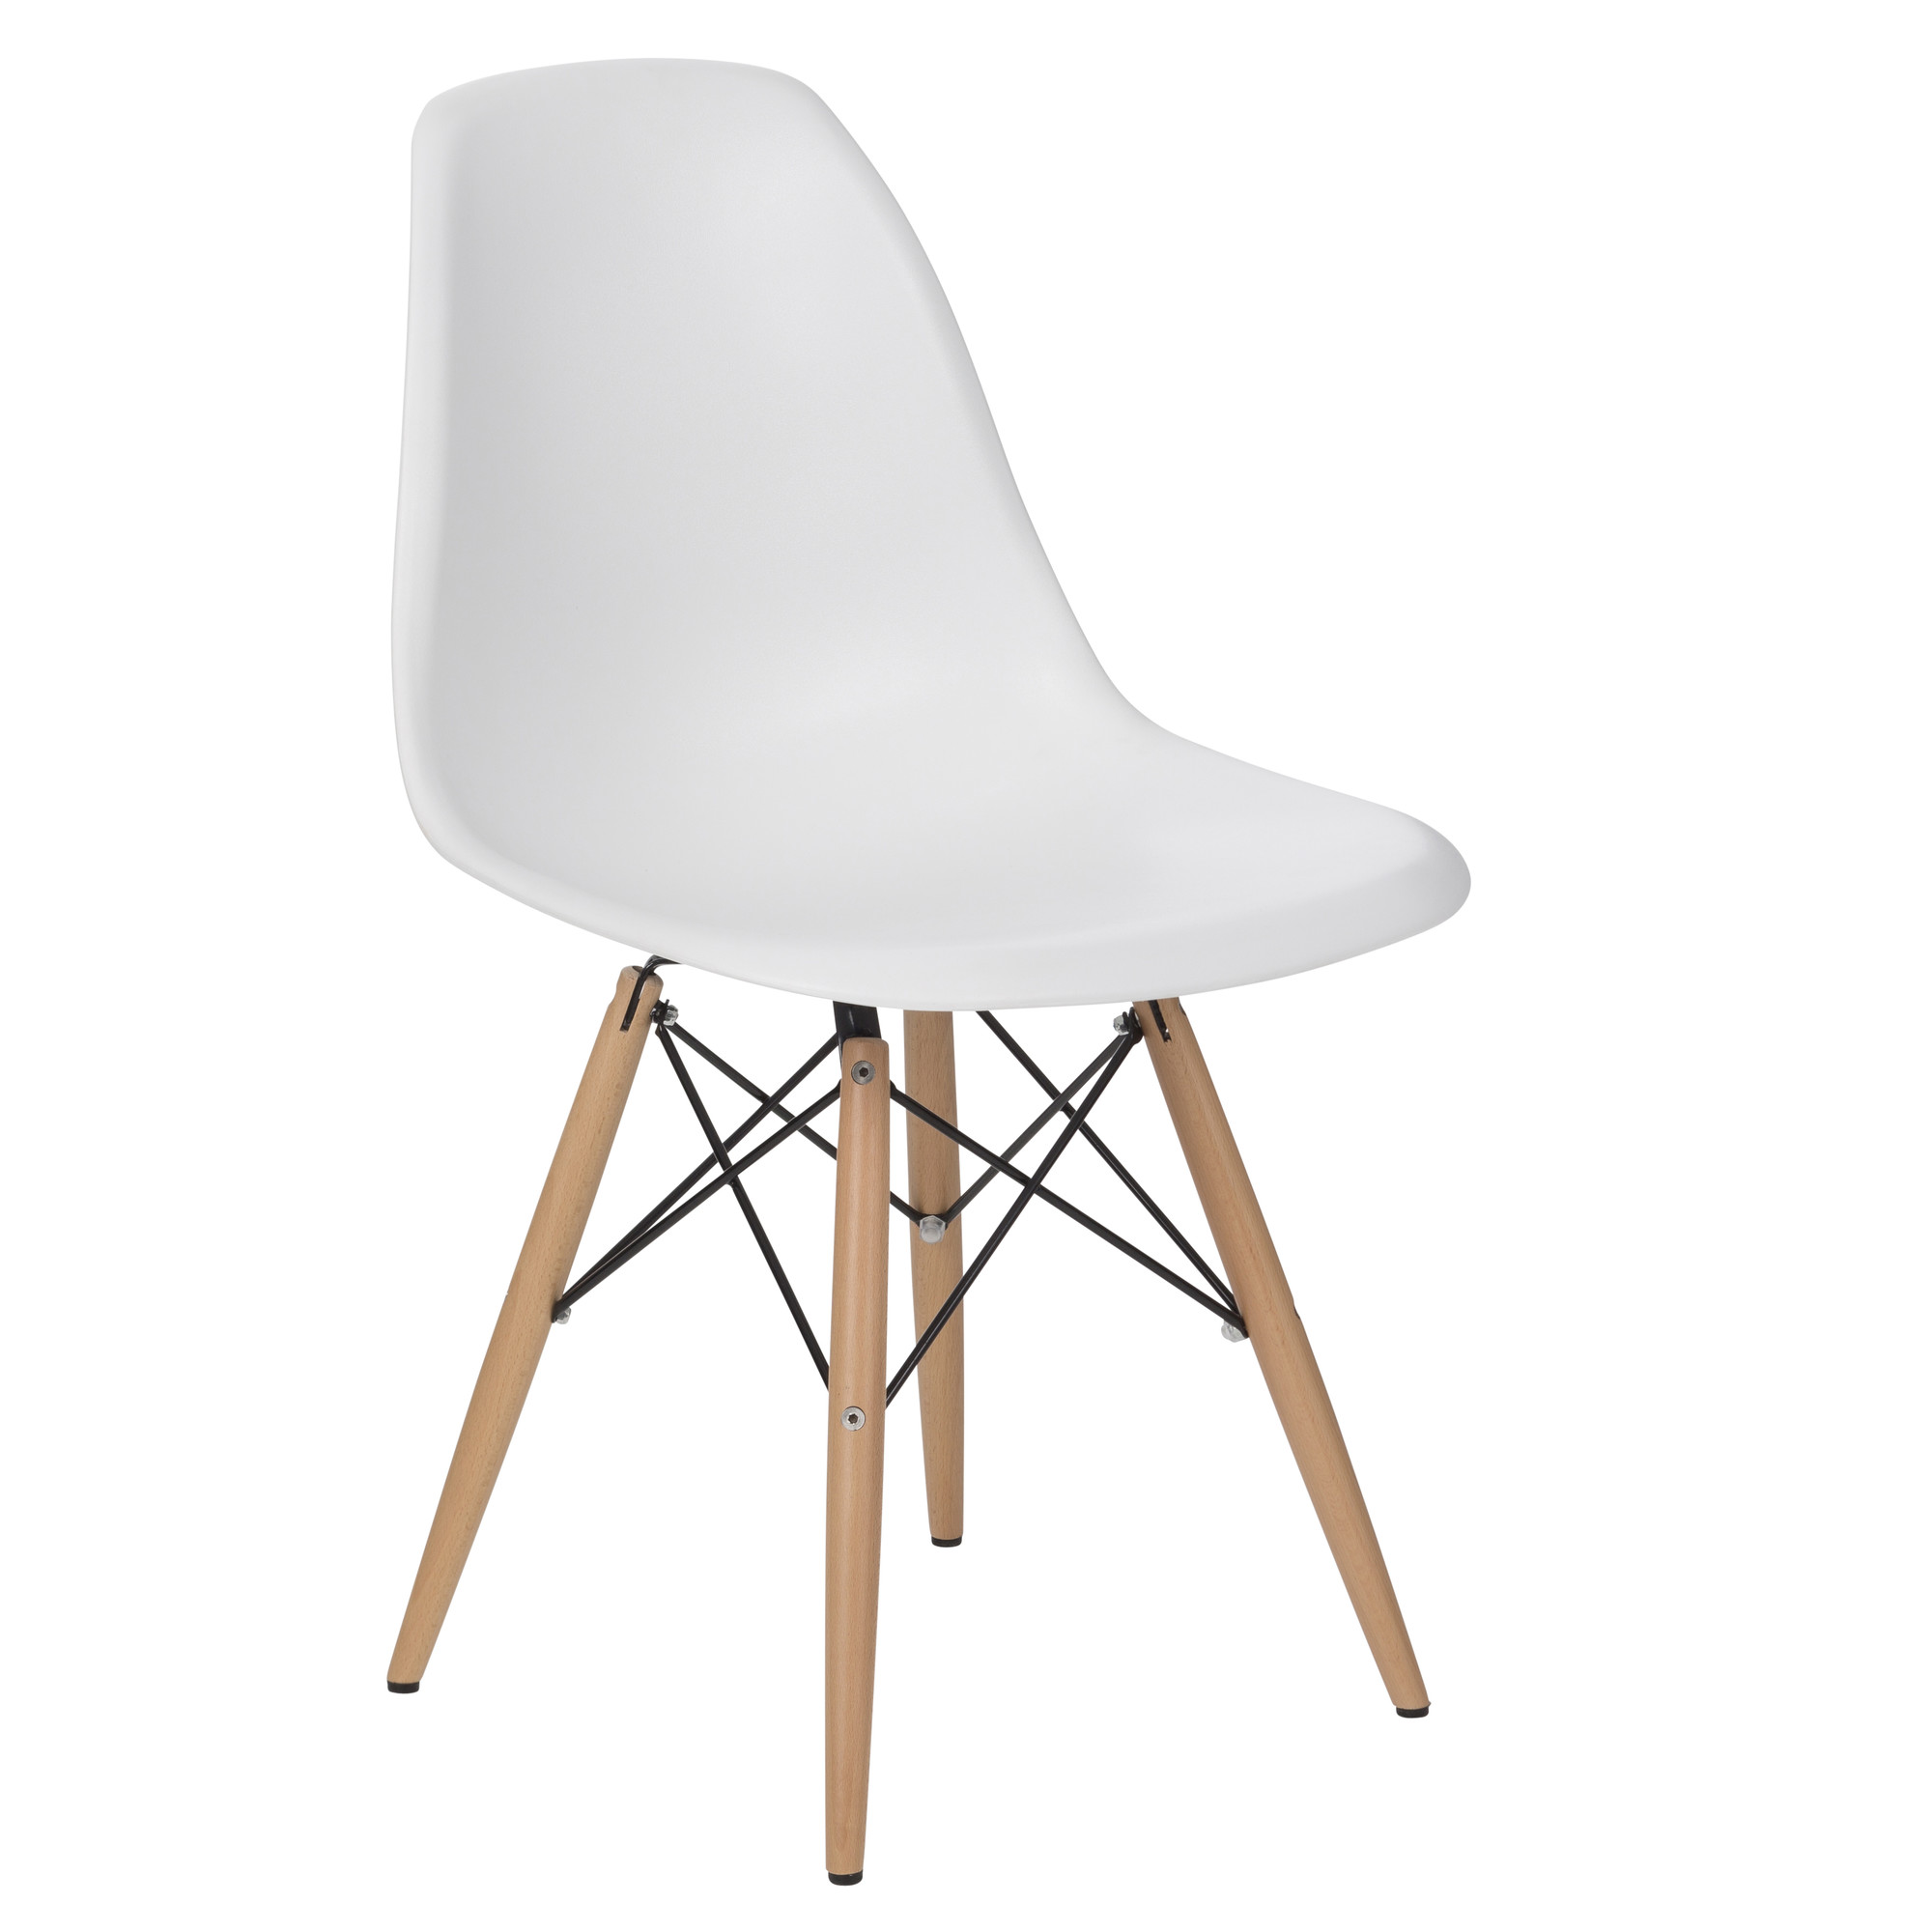 New eames replica dsw dining side chair ebay for Reproduction eames dsw